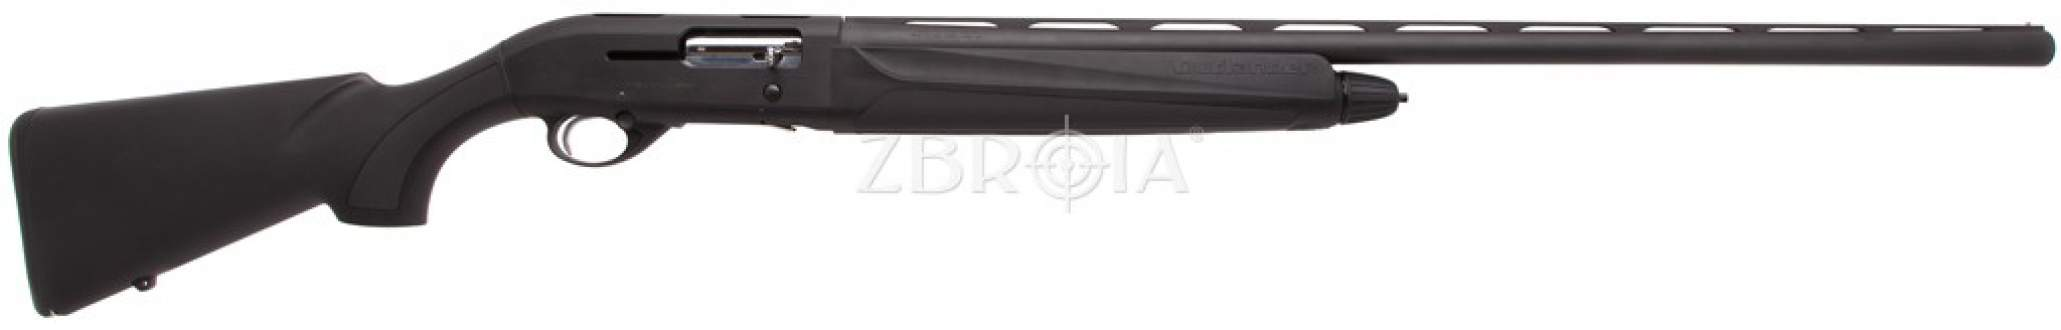 Ружье Beretta A300 Outlander Synthetic кал. 12/76